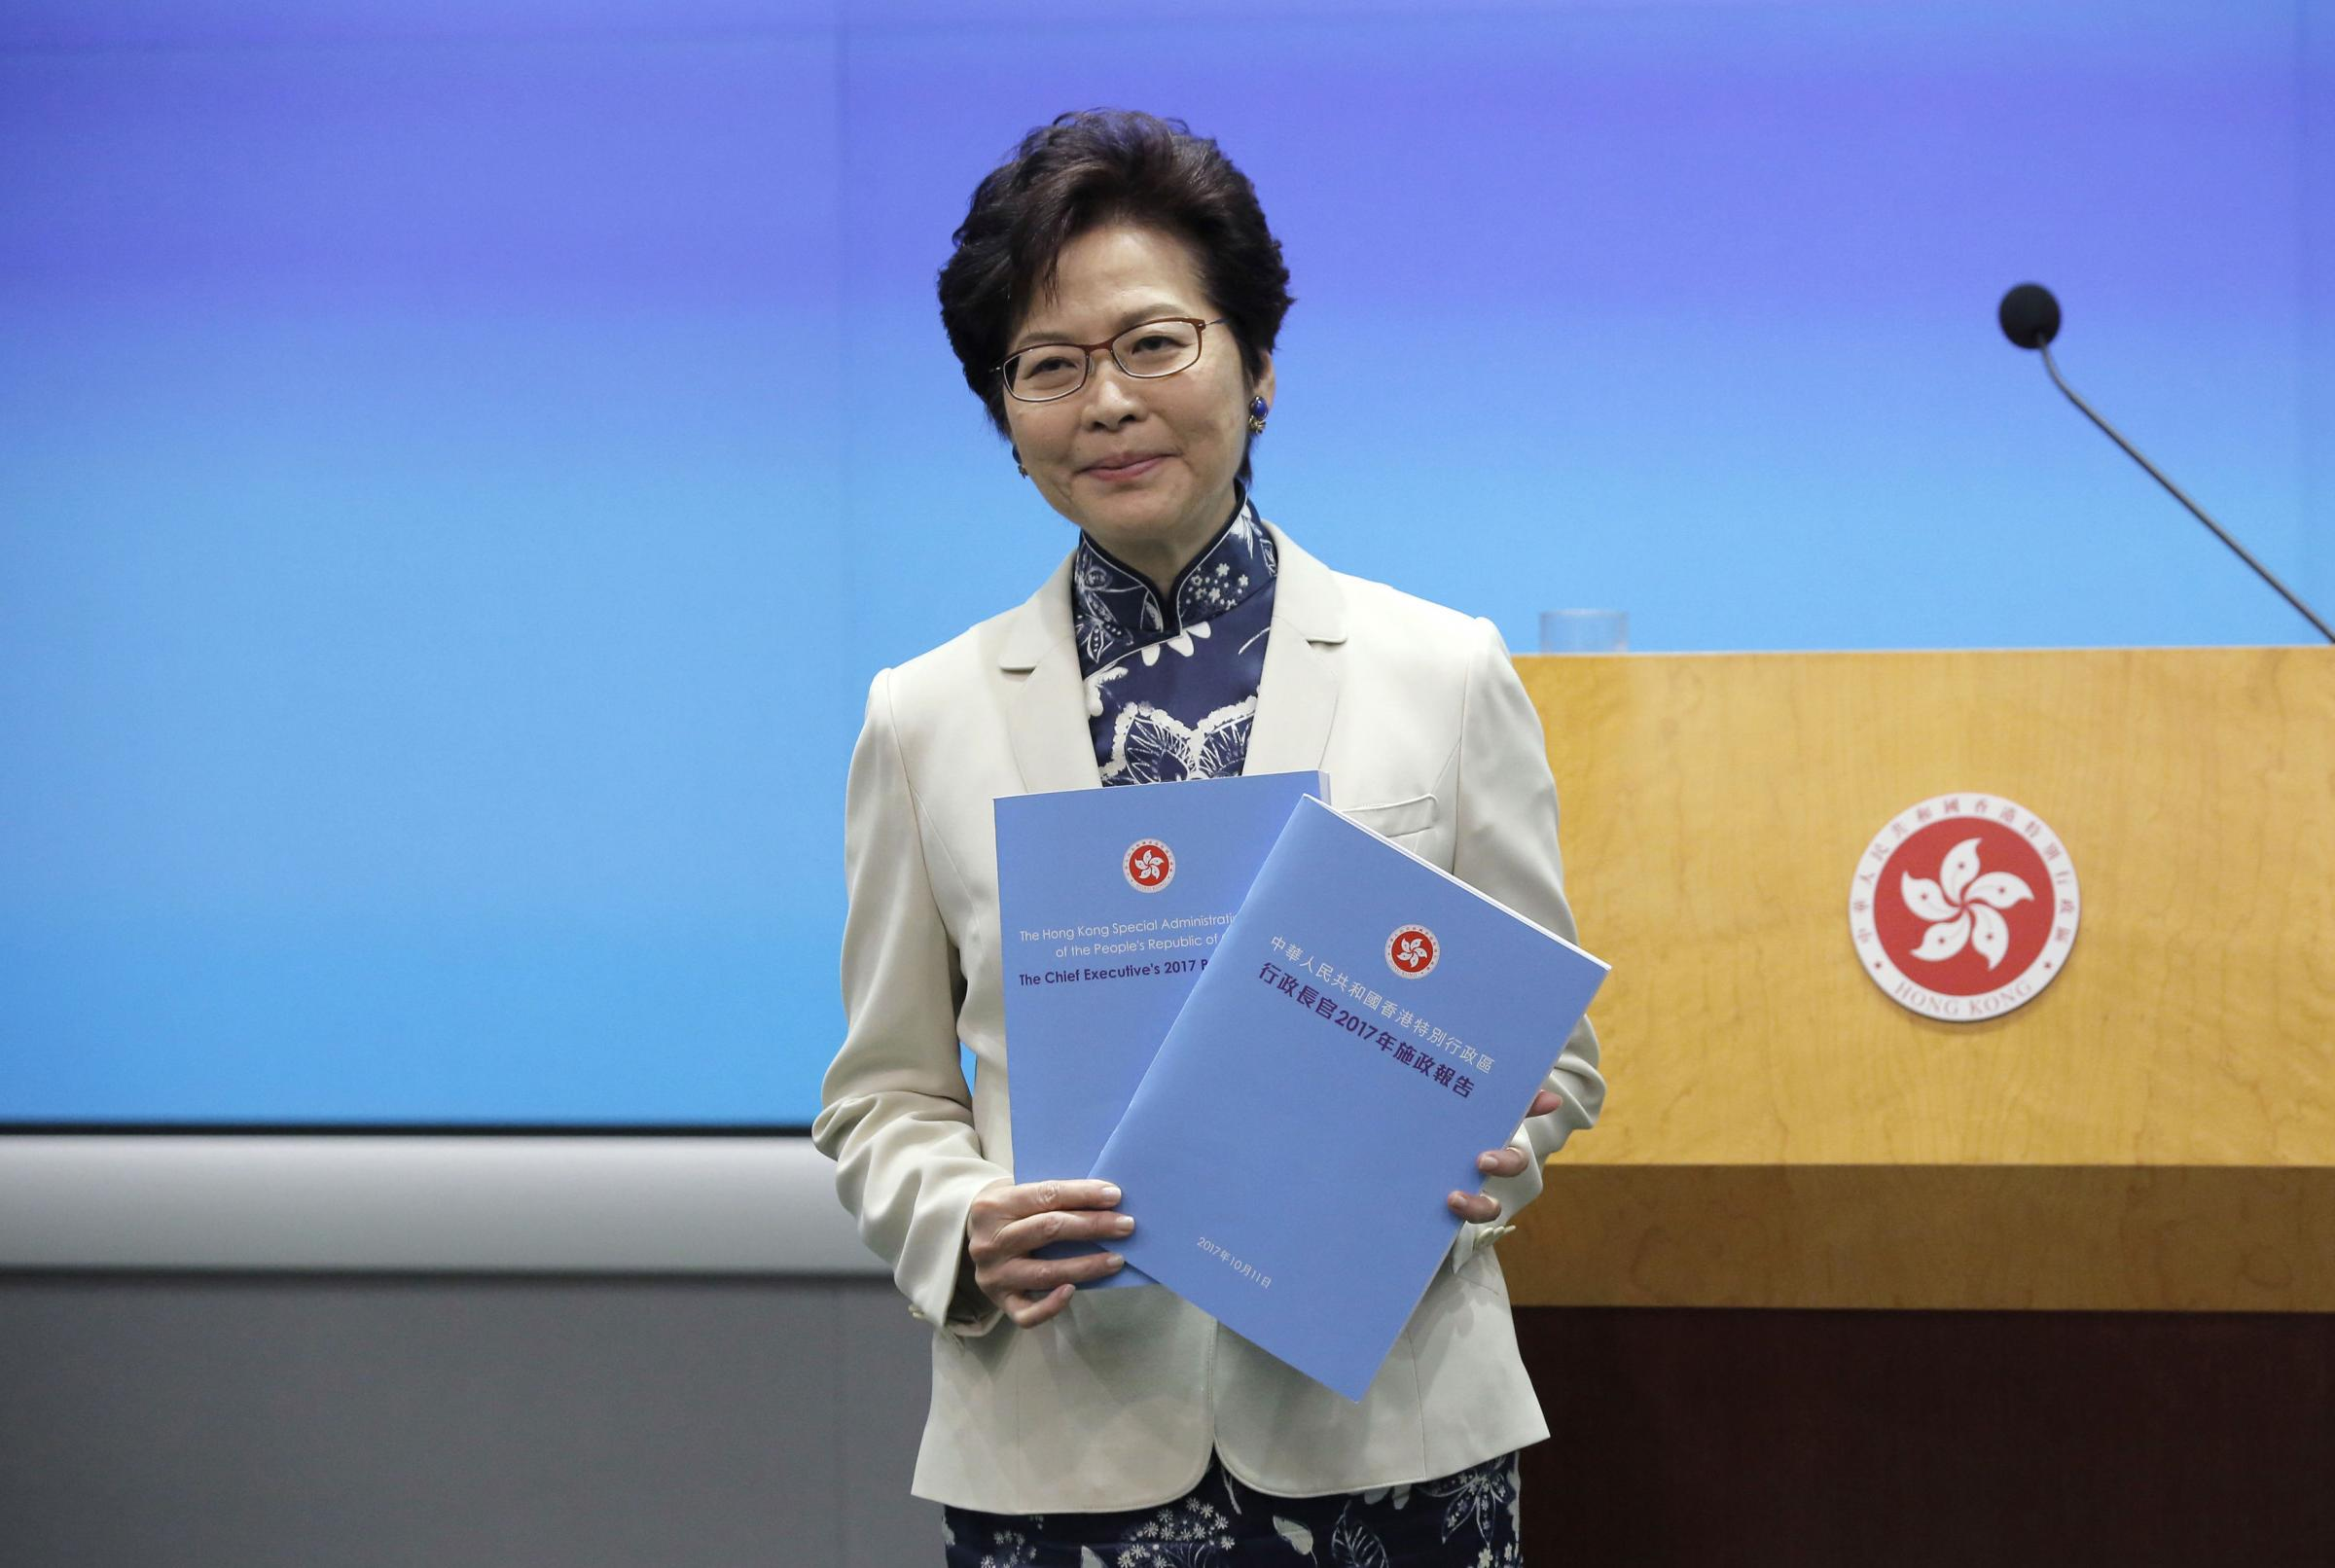 Hong Kong Chief Executive Carrie Lam at the policy address